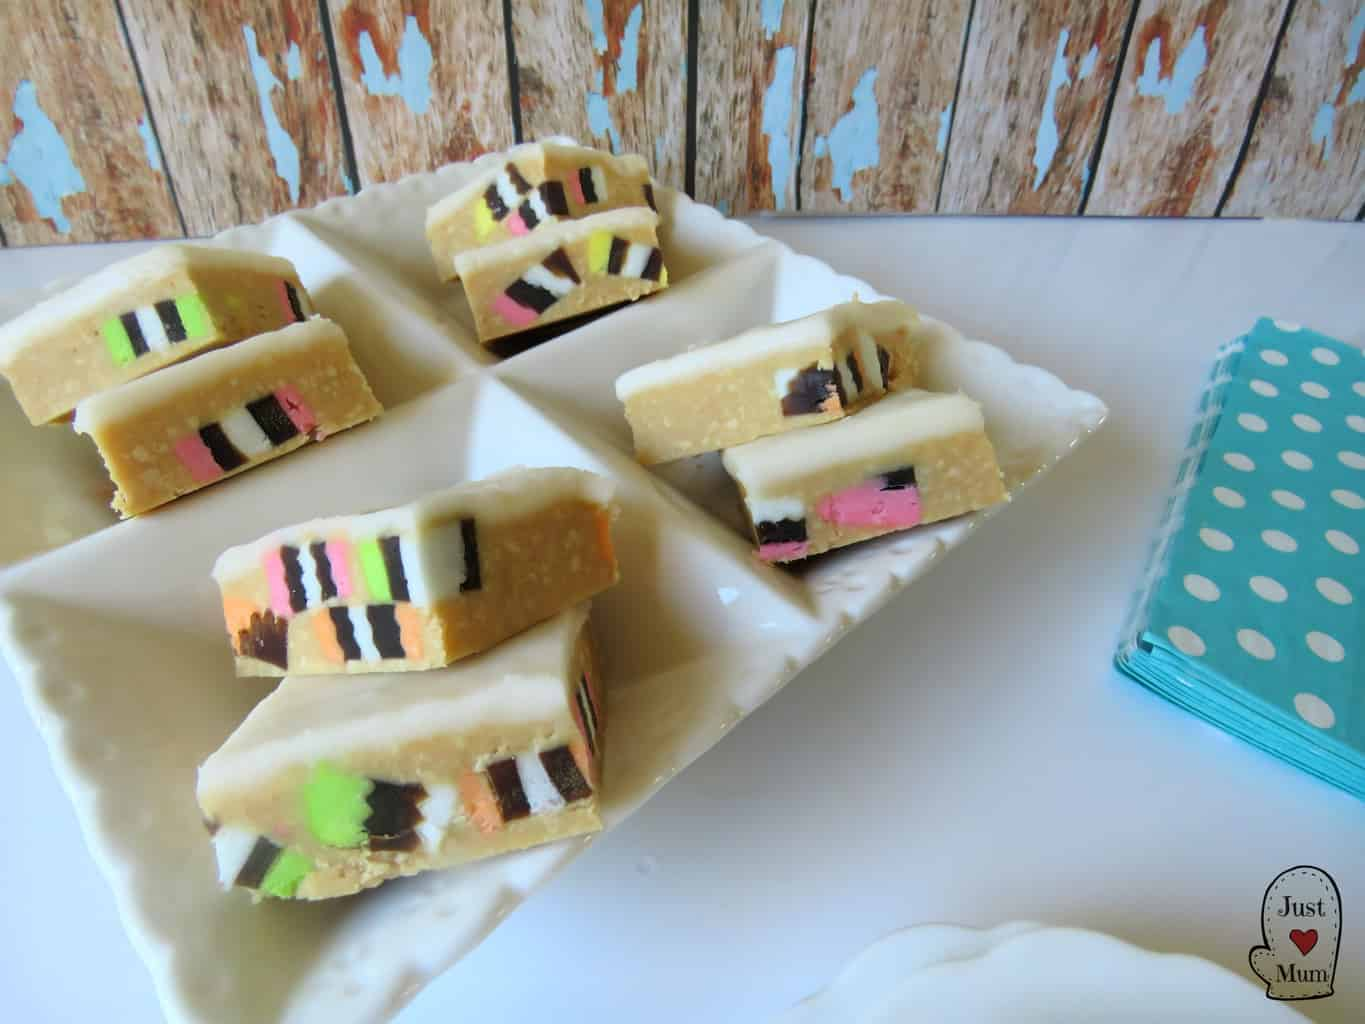 Just A Mum's No Bake Licorice Allsorts Slice